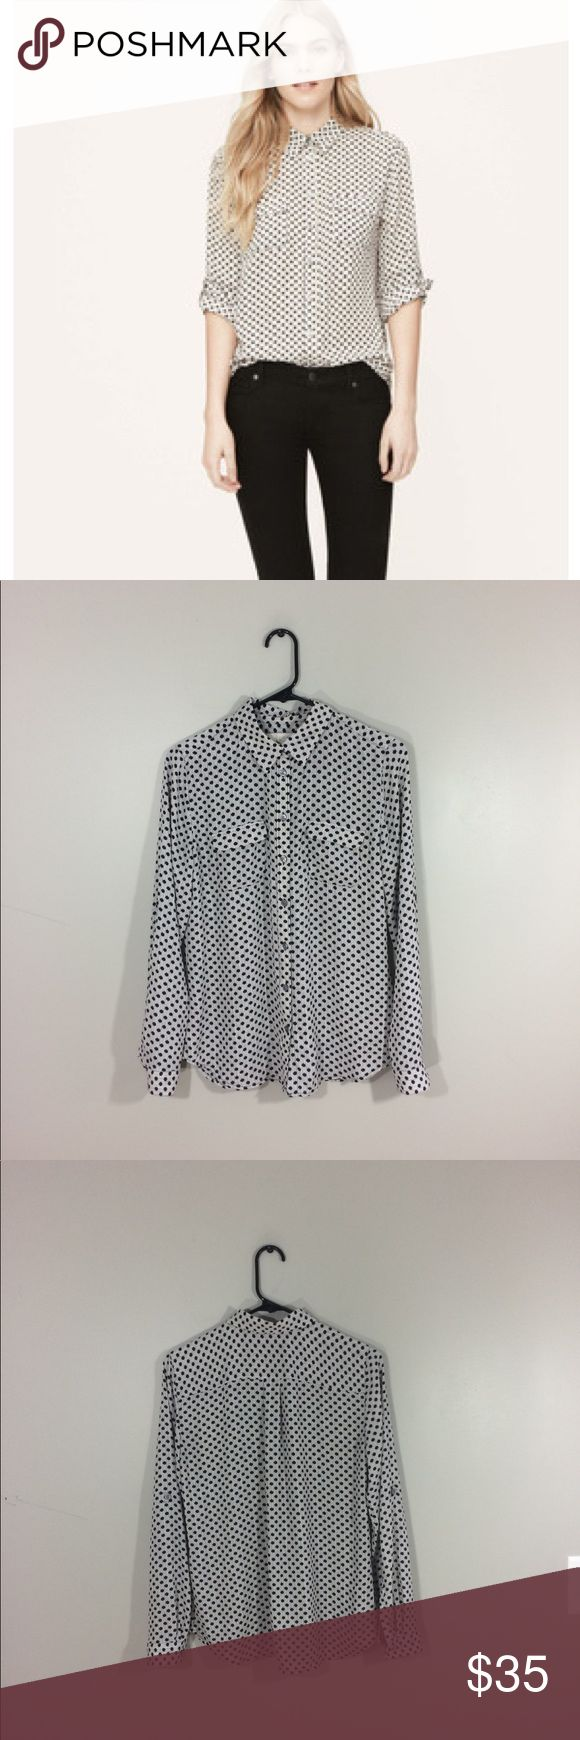 """Loft Polka Dot Stripe Utility Button Up Top No holes or stains. Has black polka dots with brown stripes. Slightly sheer, but is mostly opaque. Has buttons on elbows so the sleeves can be rolled up. 100% polyester. 25"""" length: 19"""" Pit to pit: no trades. LOFT Tops Button Down Shirts"""